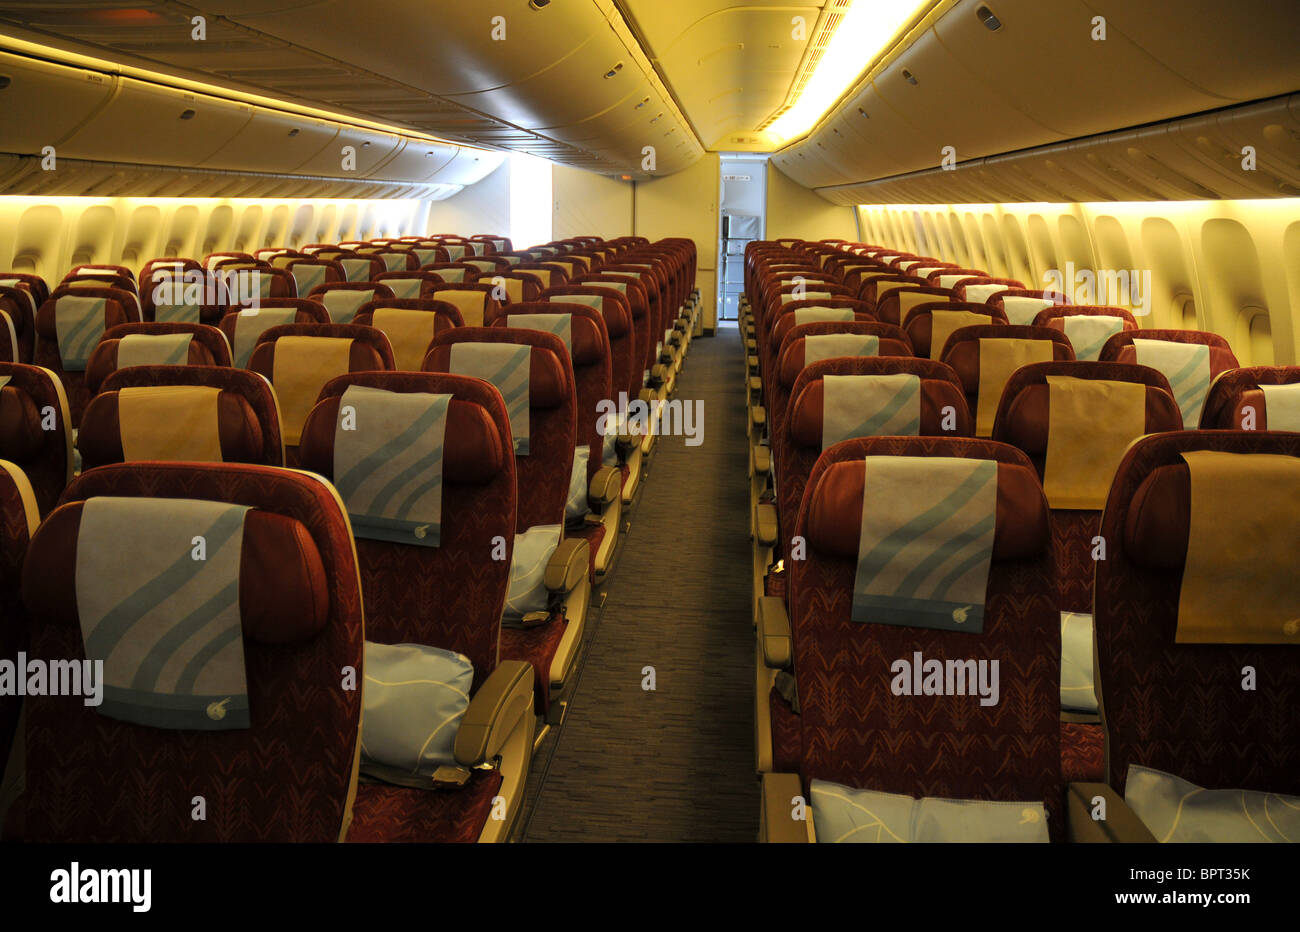 Boeing 777 Interior, Inside The Economy Class Cabin On An Airliner